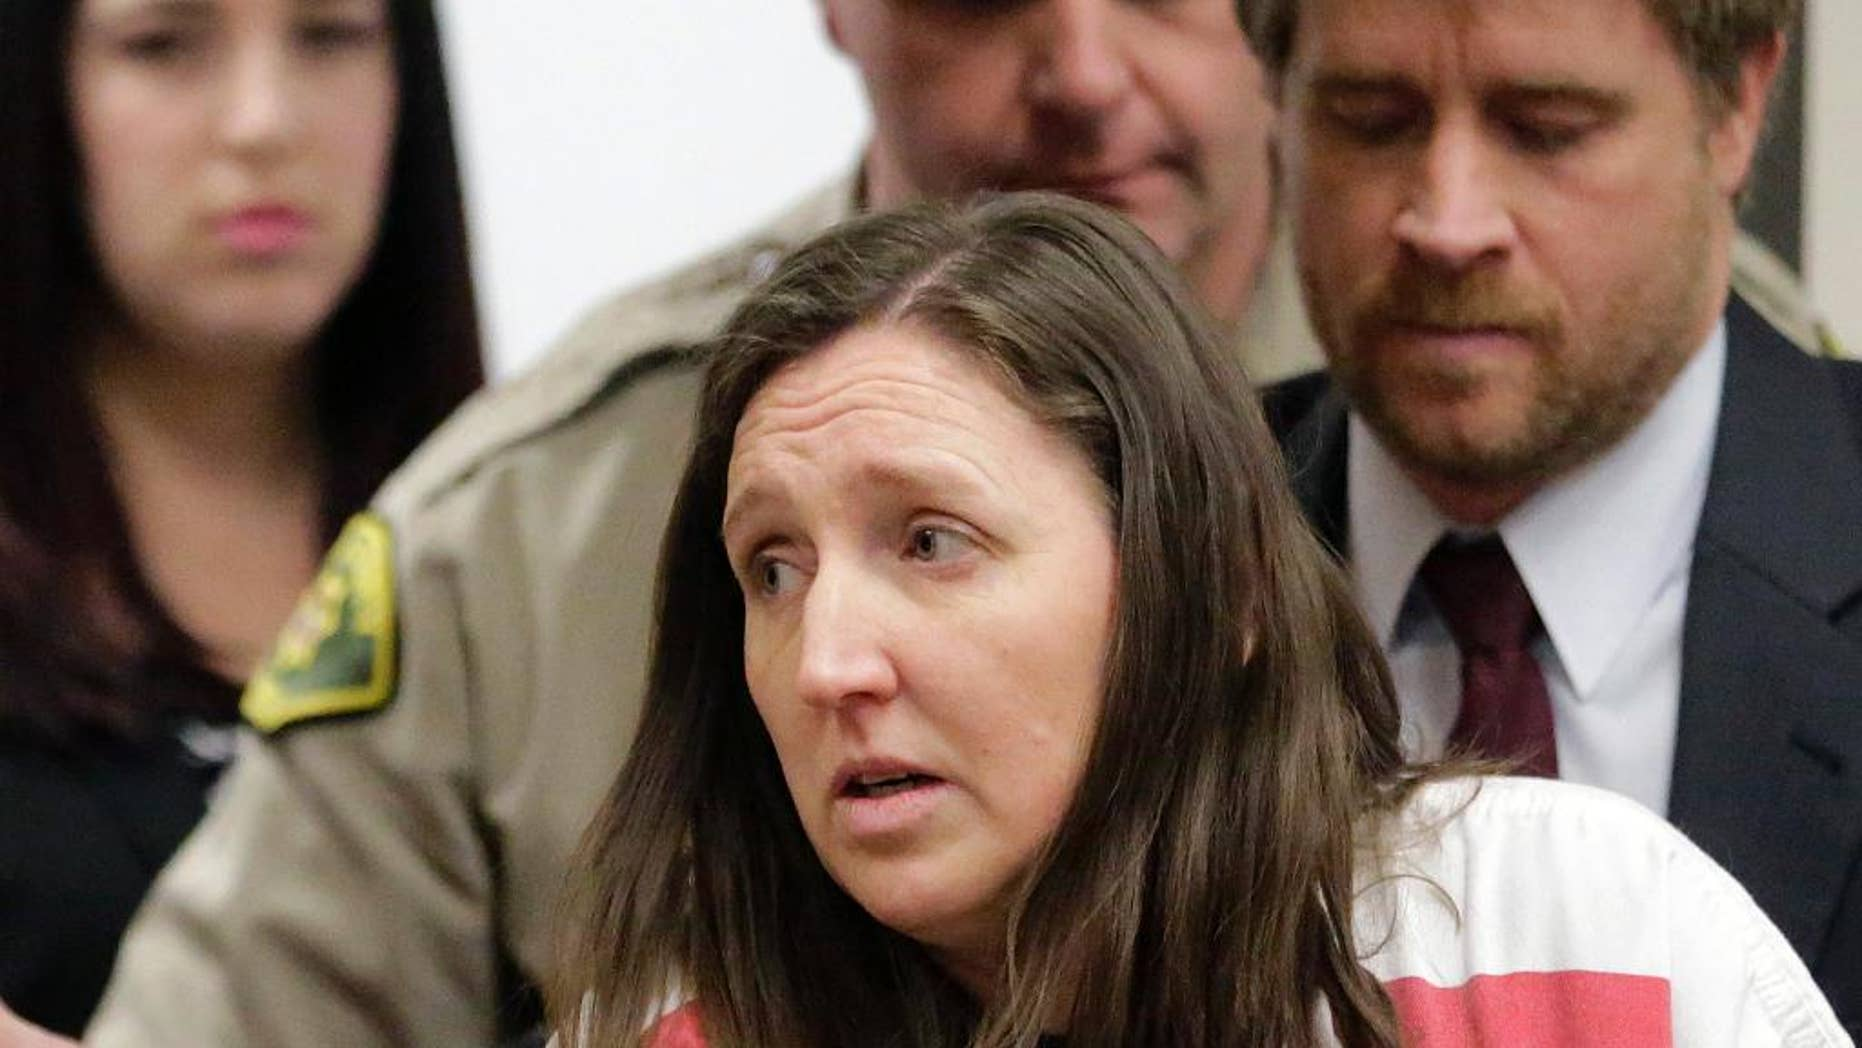 Feb. 12, 2015: In this file photo, Megan Huntsman arrives in court in Provo, Utah. Huntsman who pleaded guilty to killing six of her newborn babies and storing their bodies in her garage is set to be sentenced.